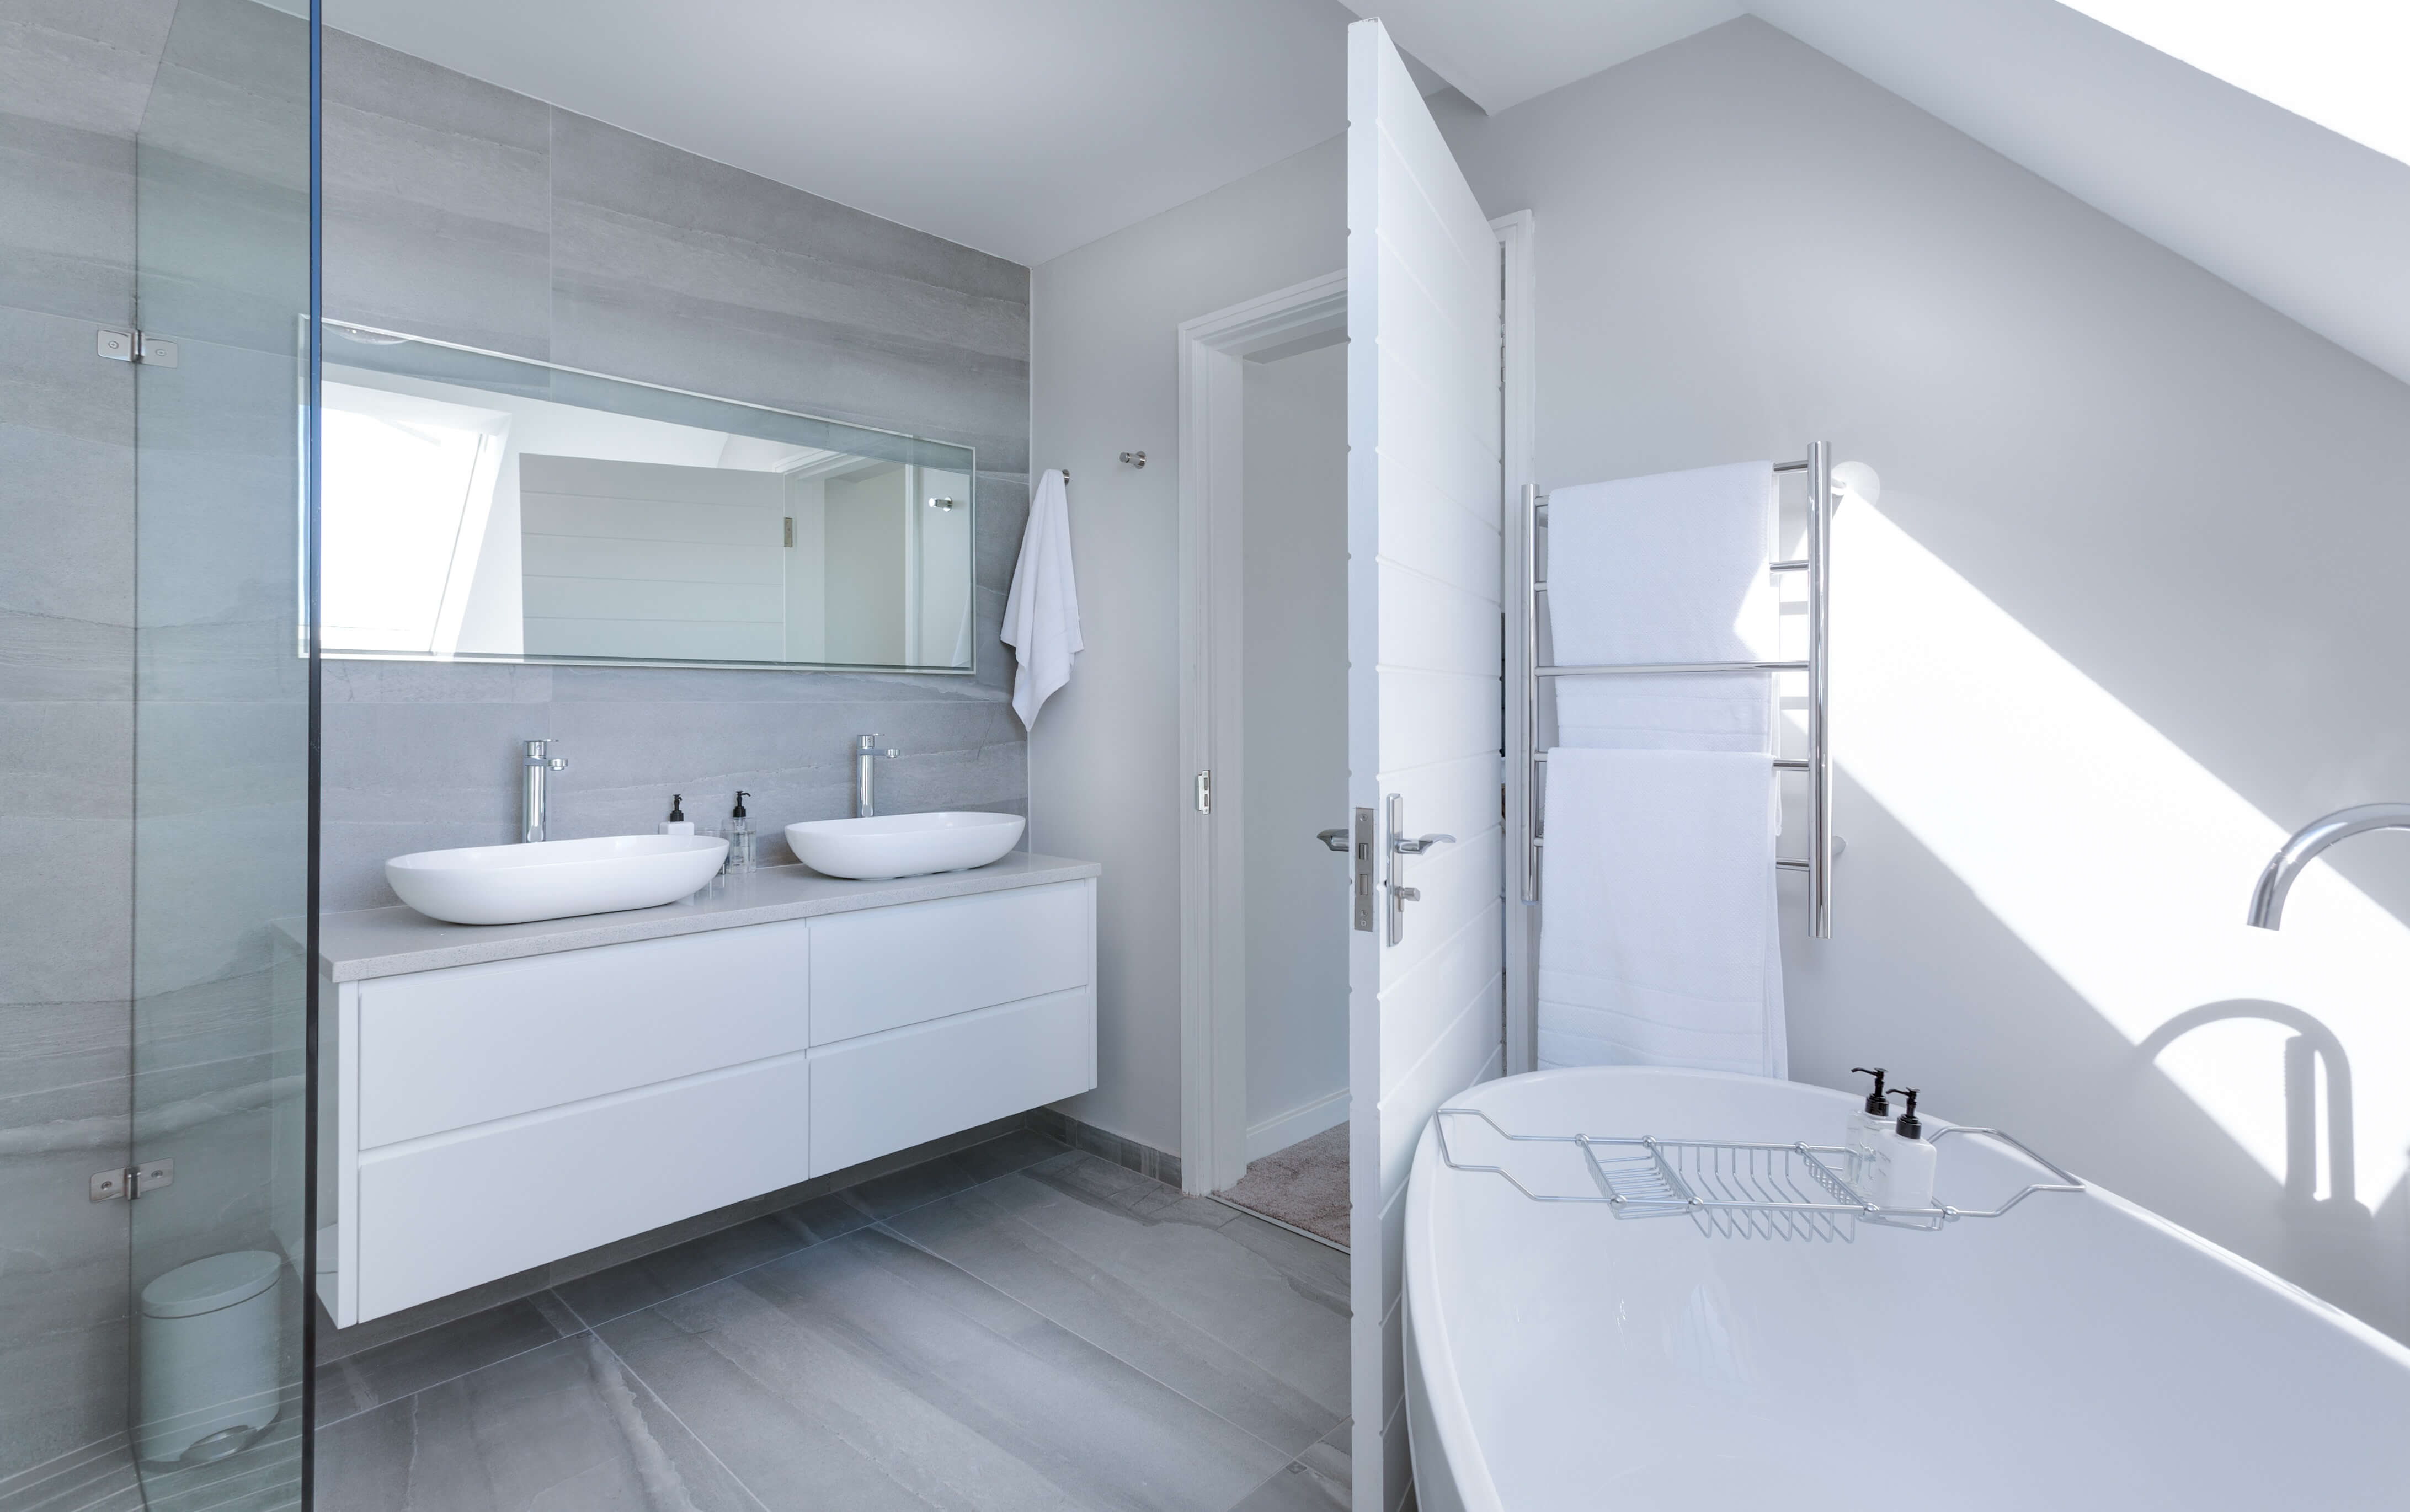 Cost of installing a bathroom suite